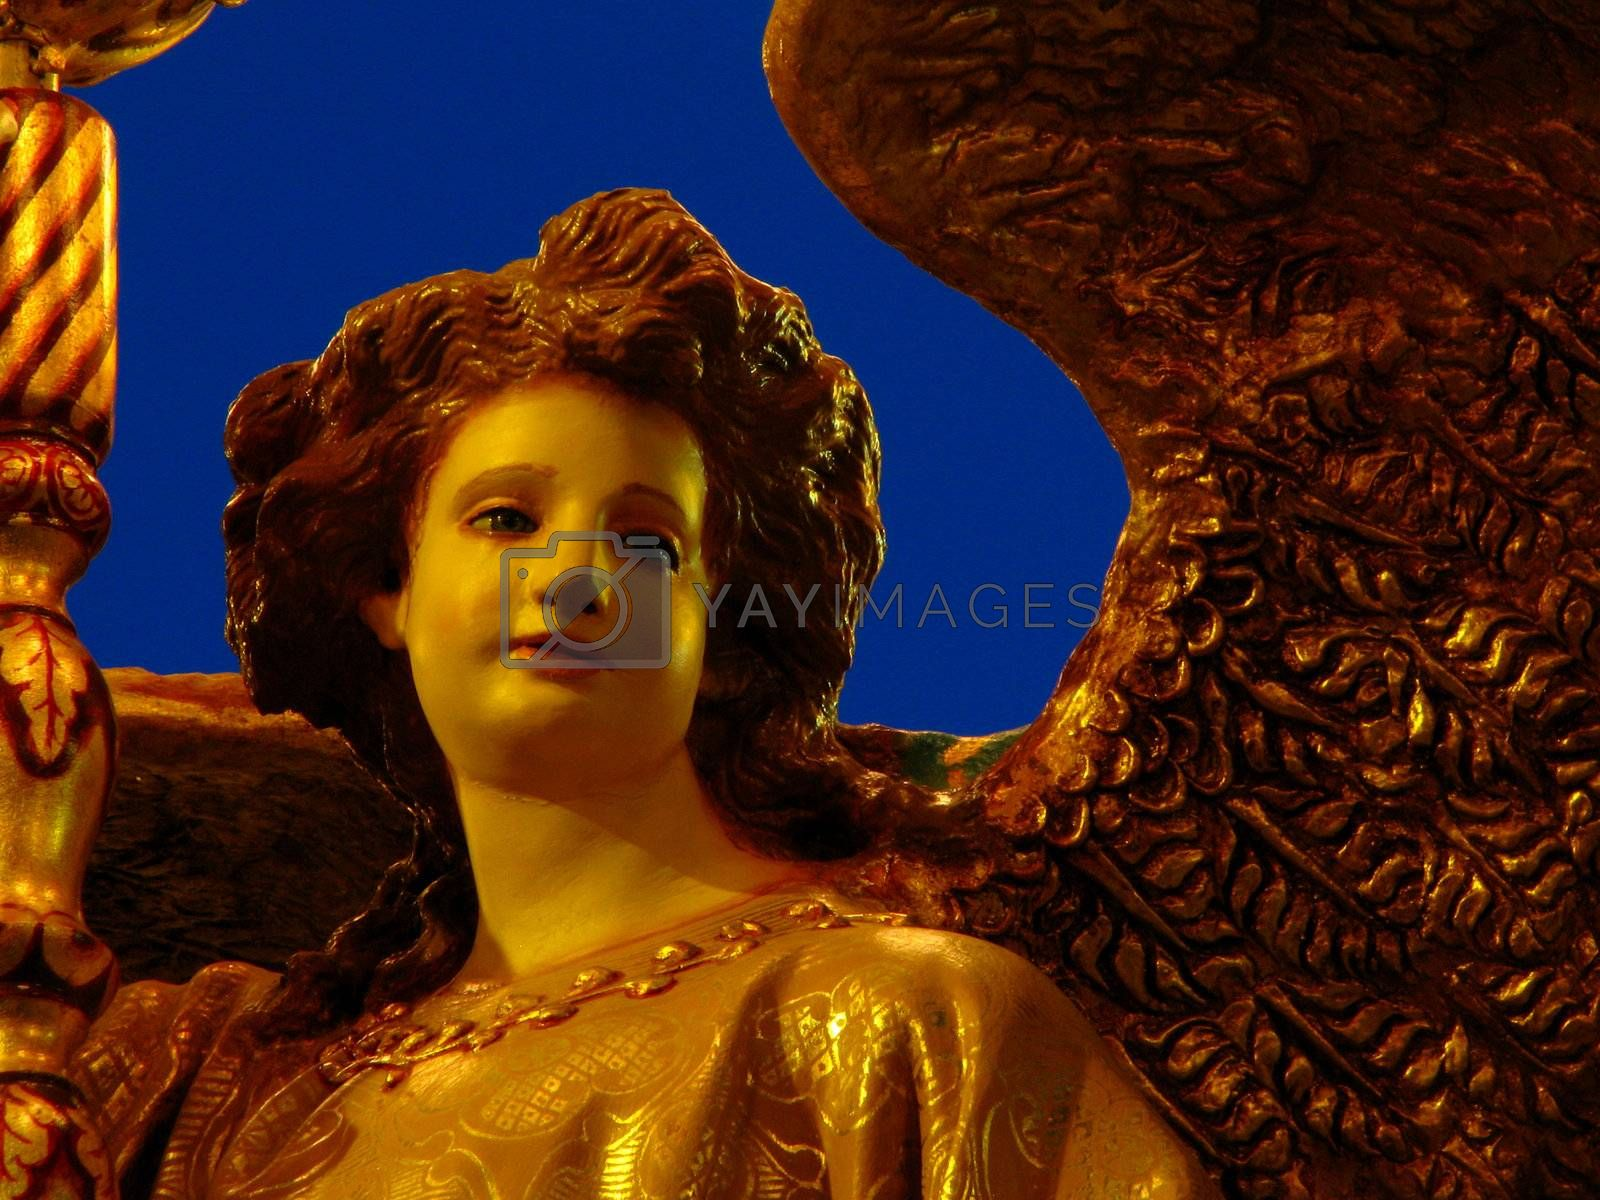 A detail of a papier mache angel on display for the occasion of the feast of Saint George in Qormi, Malta.